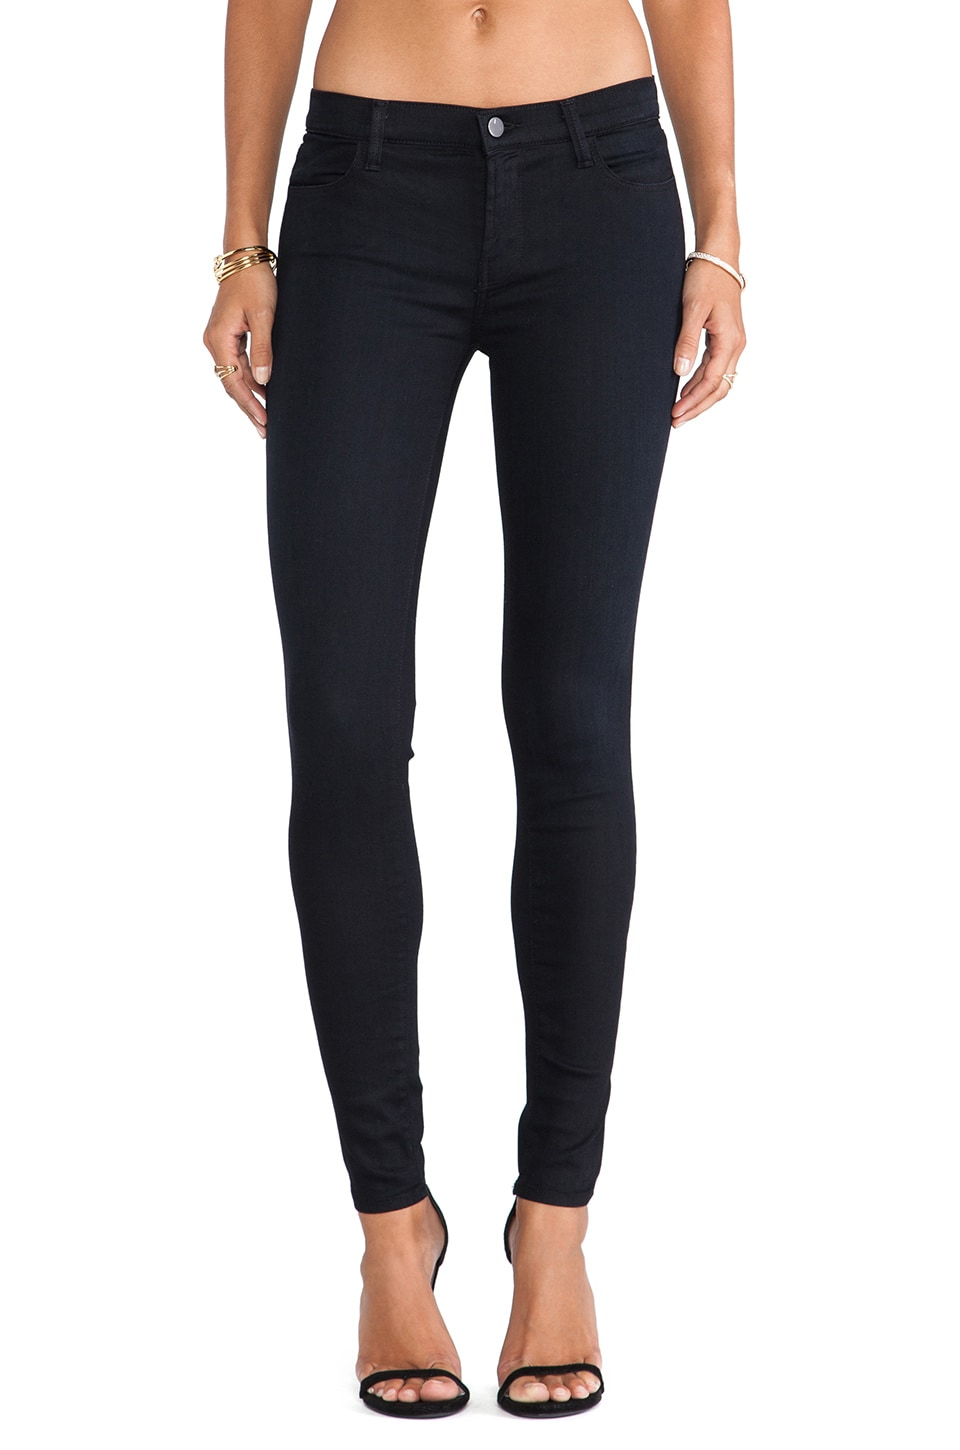 J Brand Stocking Skinny Pant in Veil